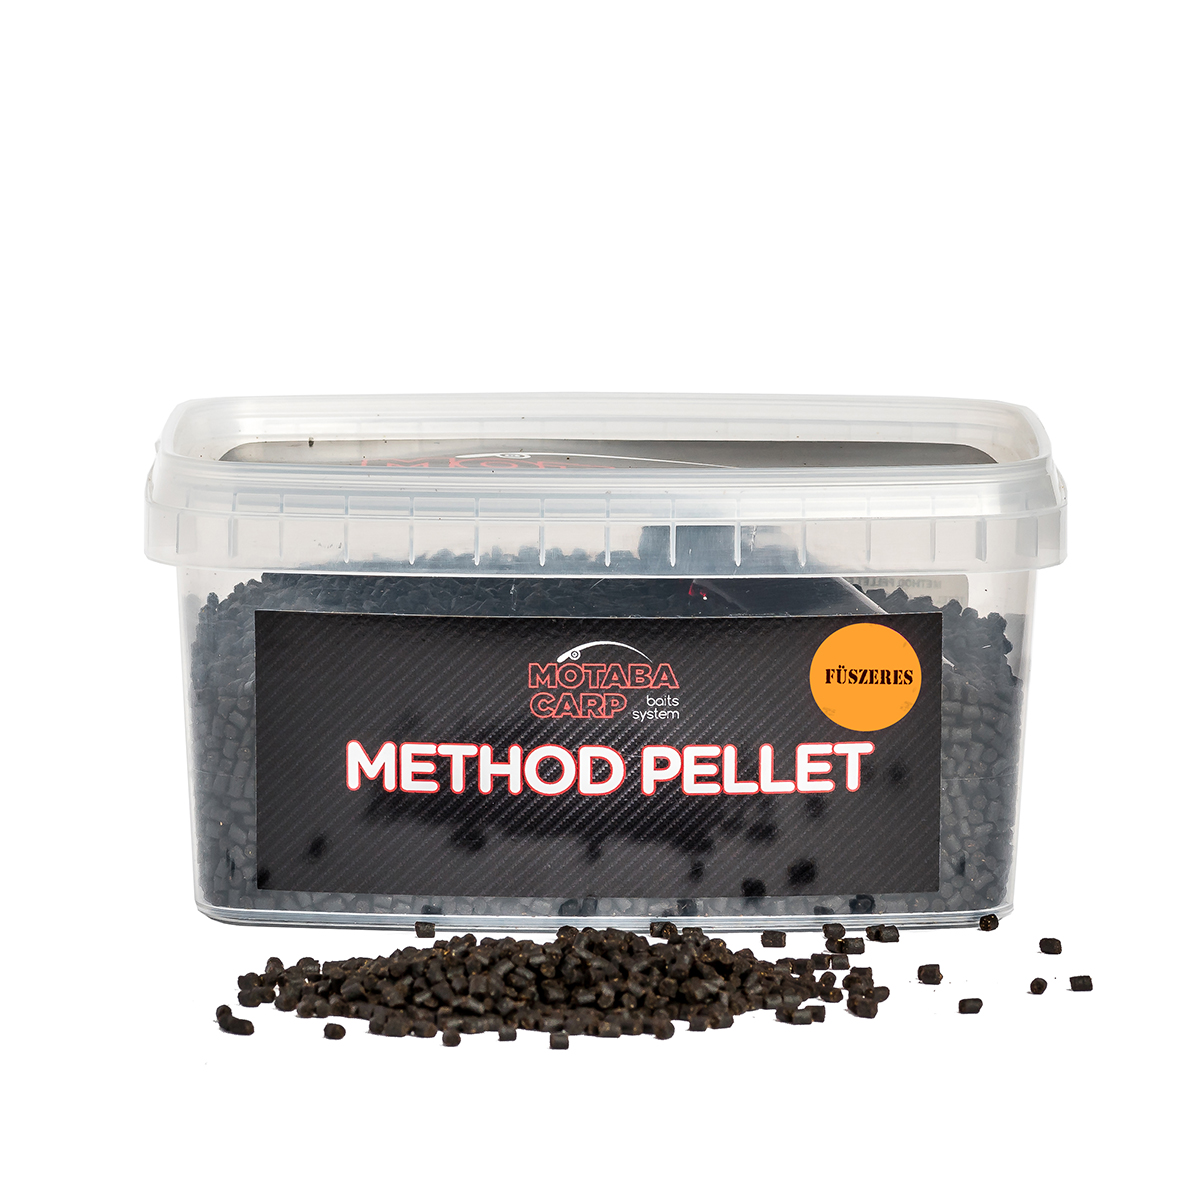 MOTABA CARP METHOD PELLET HALAS 3MM 500G